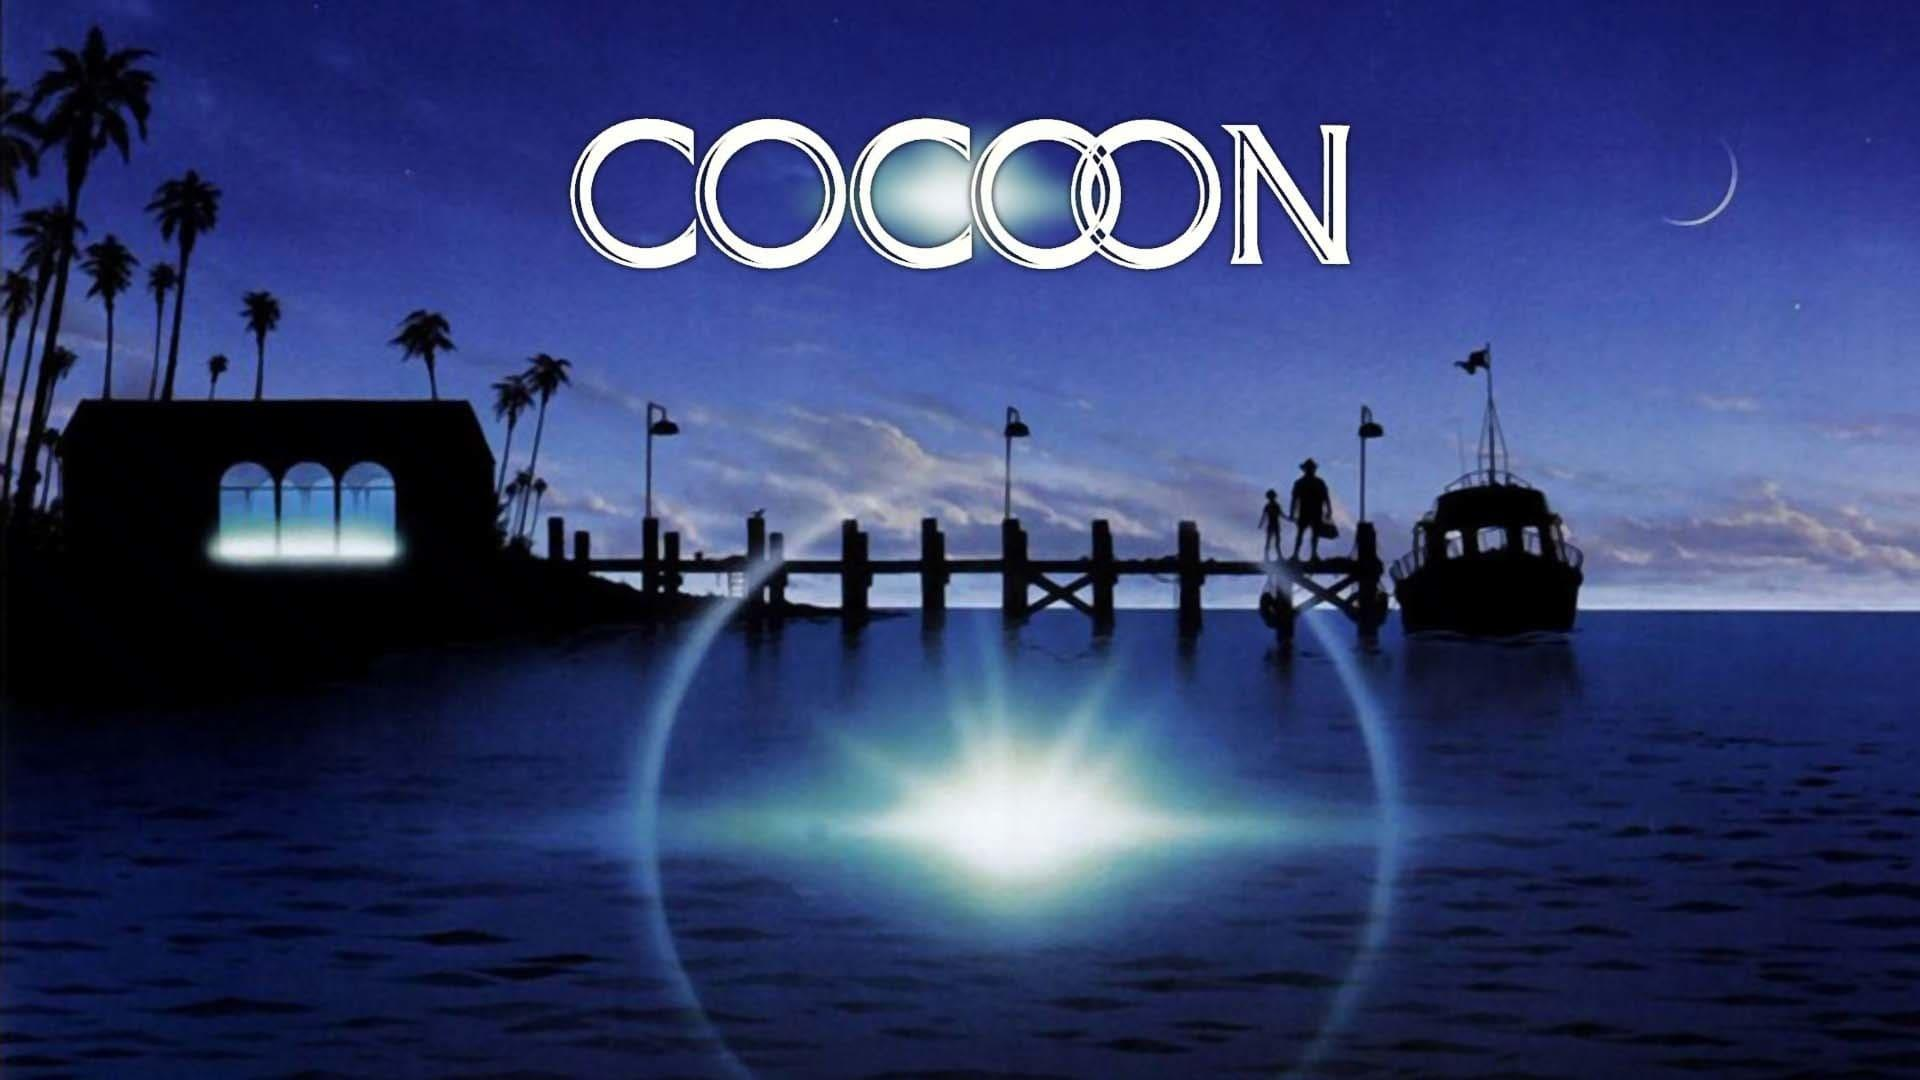 Cocoon WEB EXTRA